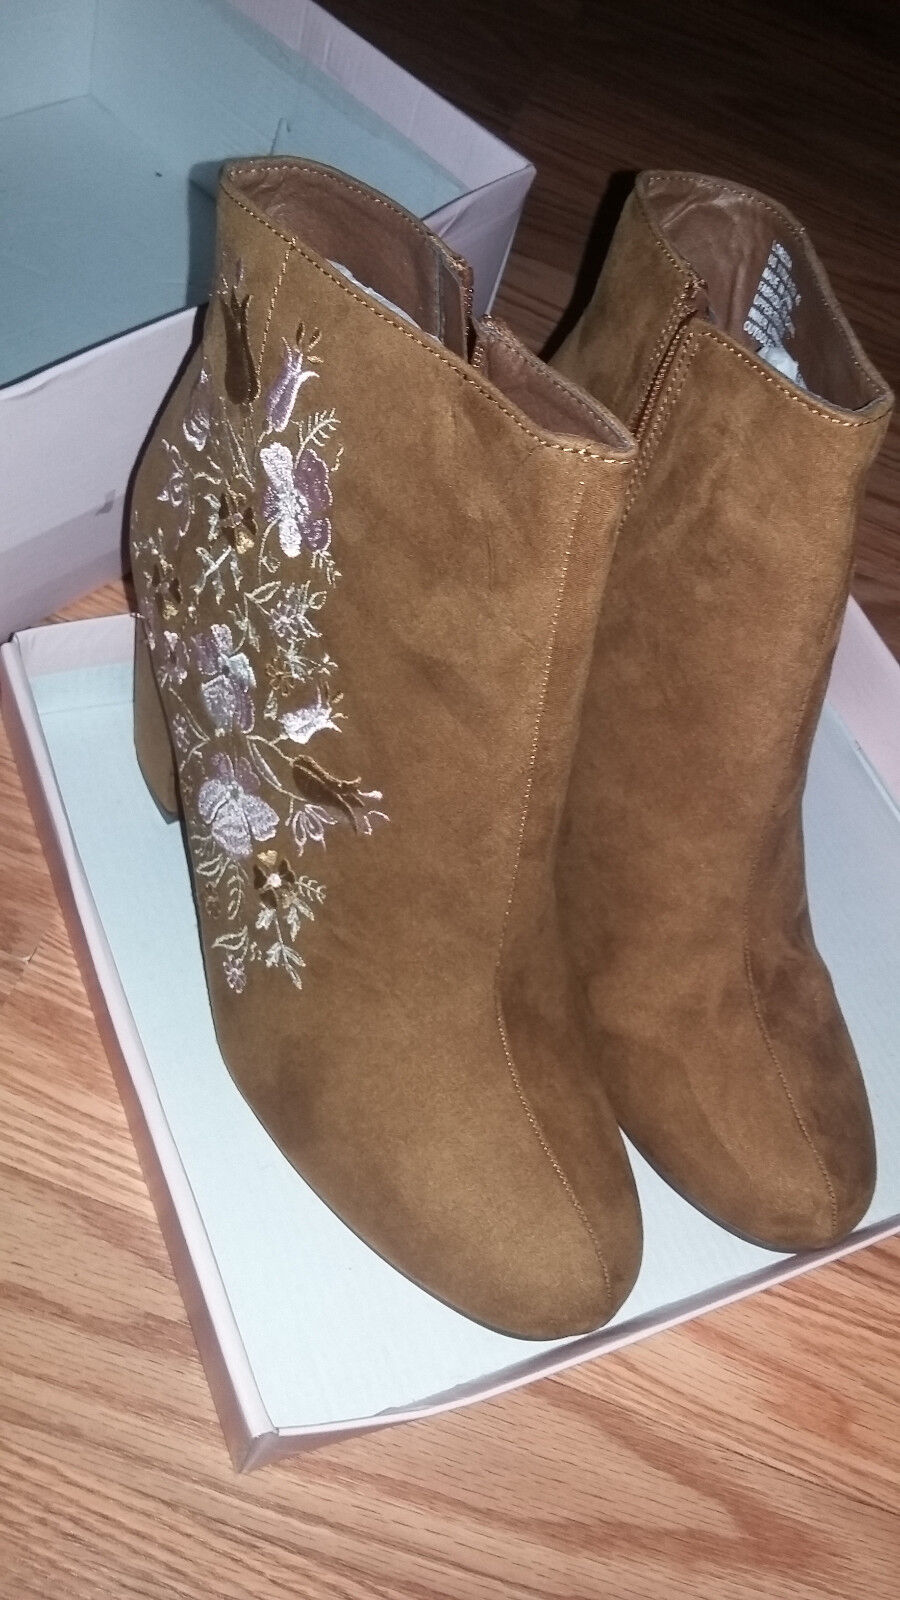 NEW Justfab Loreida Cognac size 11 booties